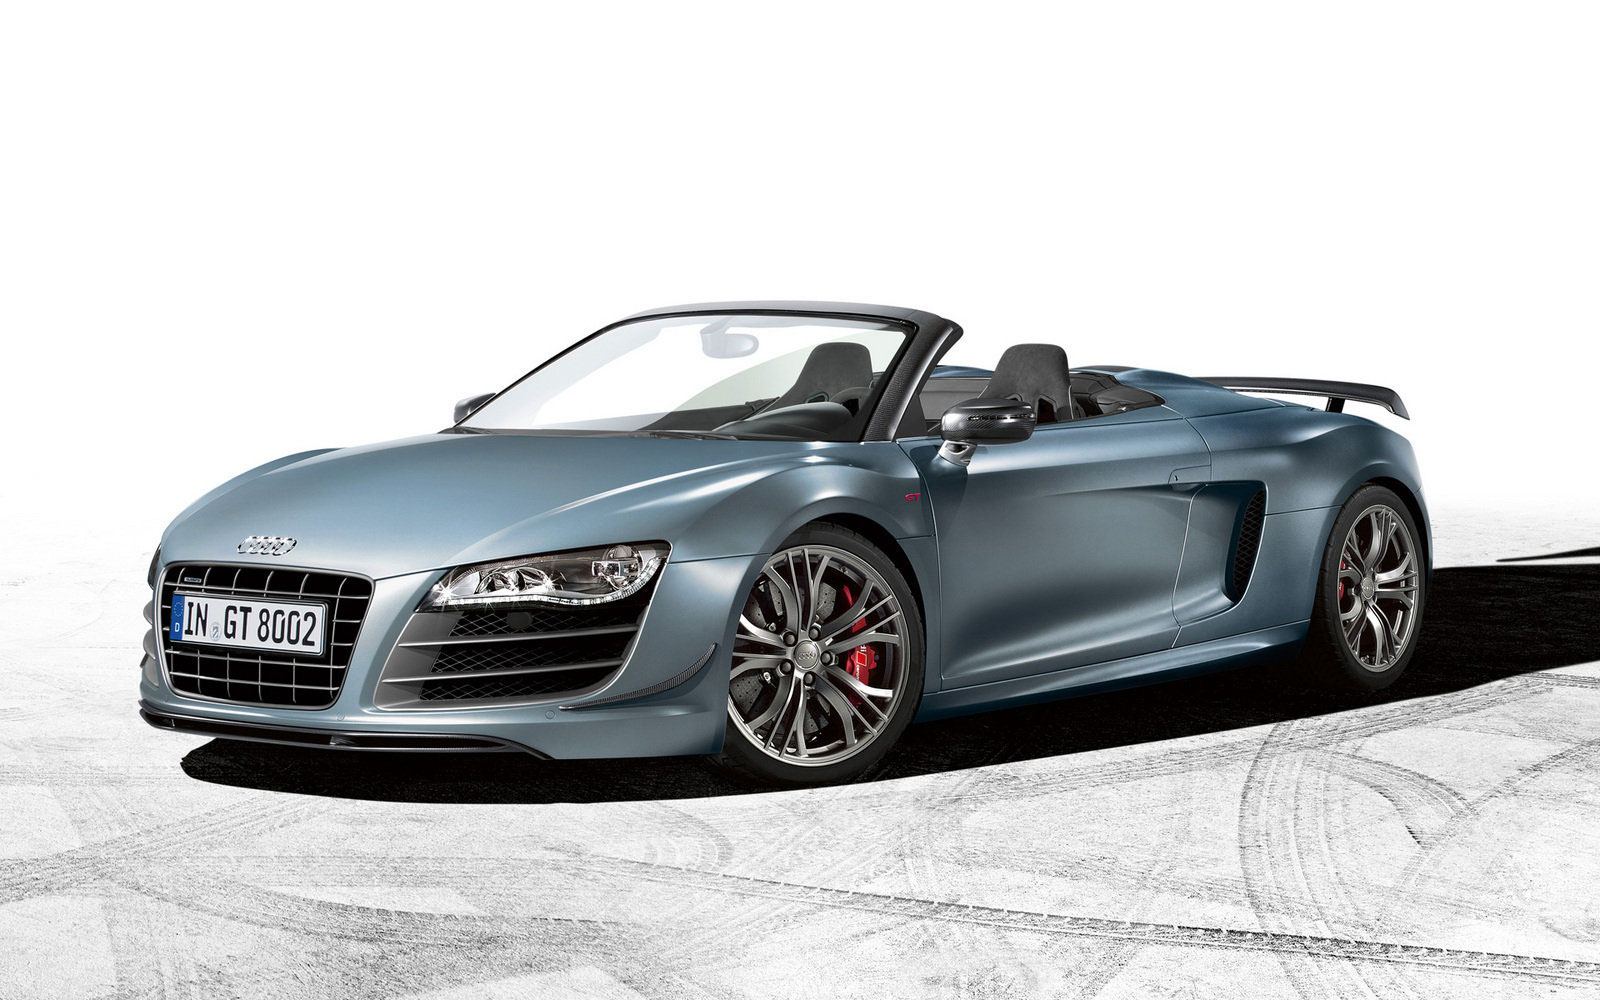 2012 Audi R8 Gt Spyder Officially Announced Extravaganzi